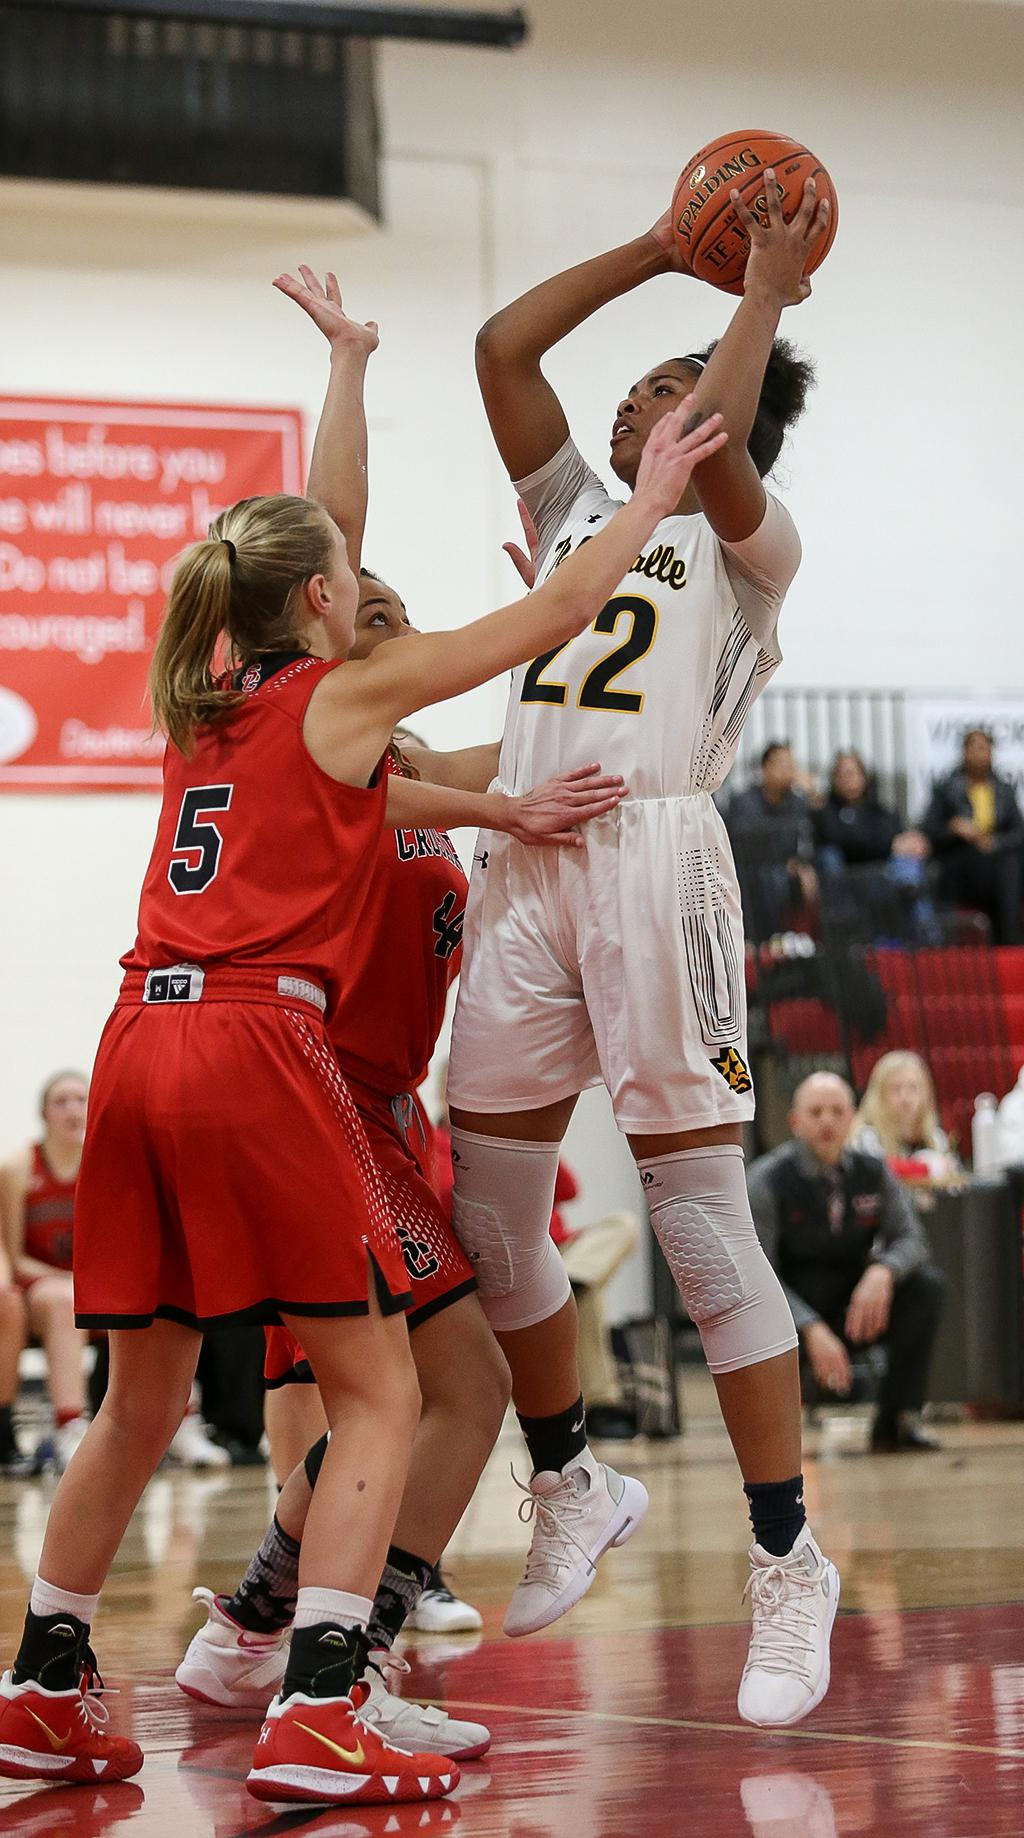 Nurjei Weems (22) pulls up at the top of the key for two points. Weems led all scoring with 20 points, helping DeLaSalle ease past St. Croix Lutheran 61-47 on Friday night. Photo by Cheryl Myers, SportsEngine